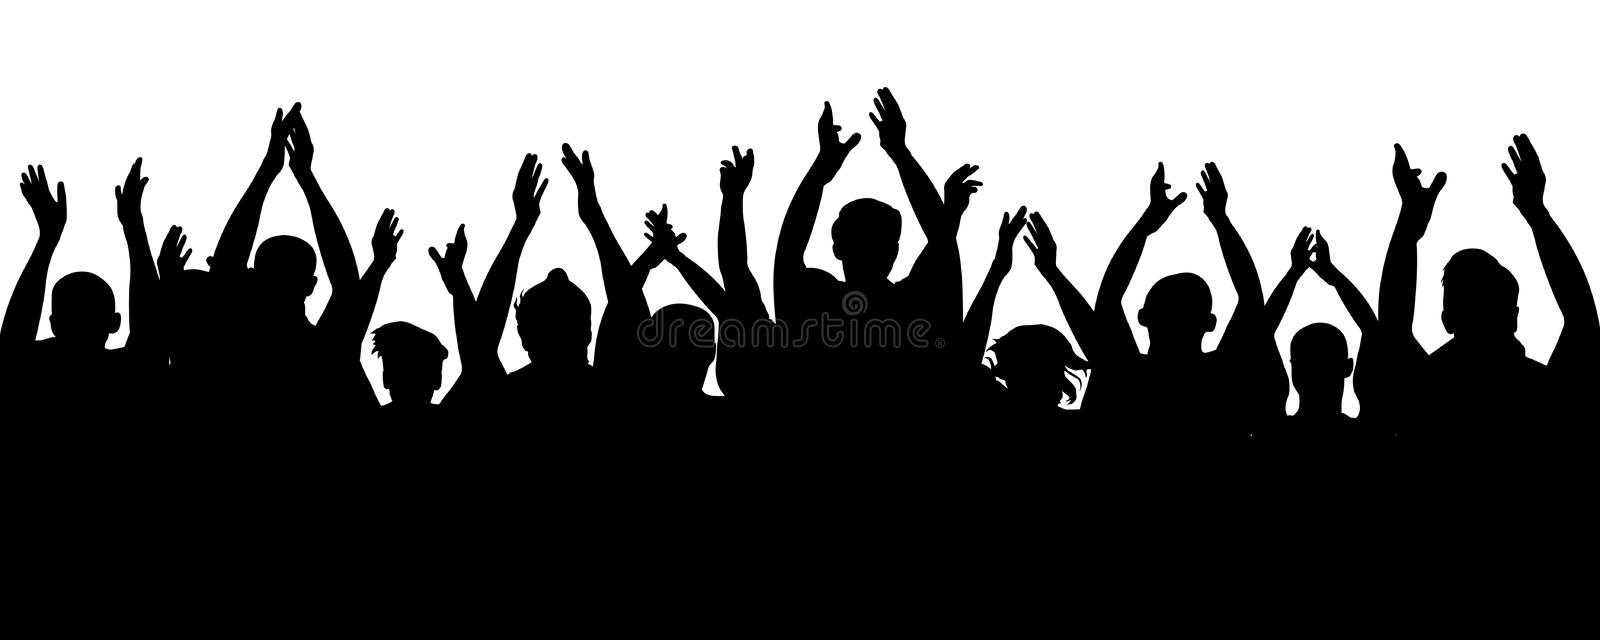 Applause audience. Crowd people cheering, cheer hands up. Cheerful mob fans applauding, clapping. Party, concert, sport. royalty free stock photos